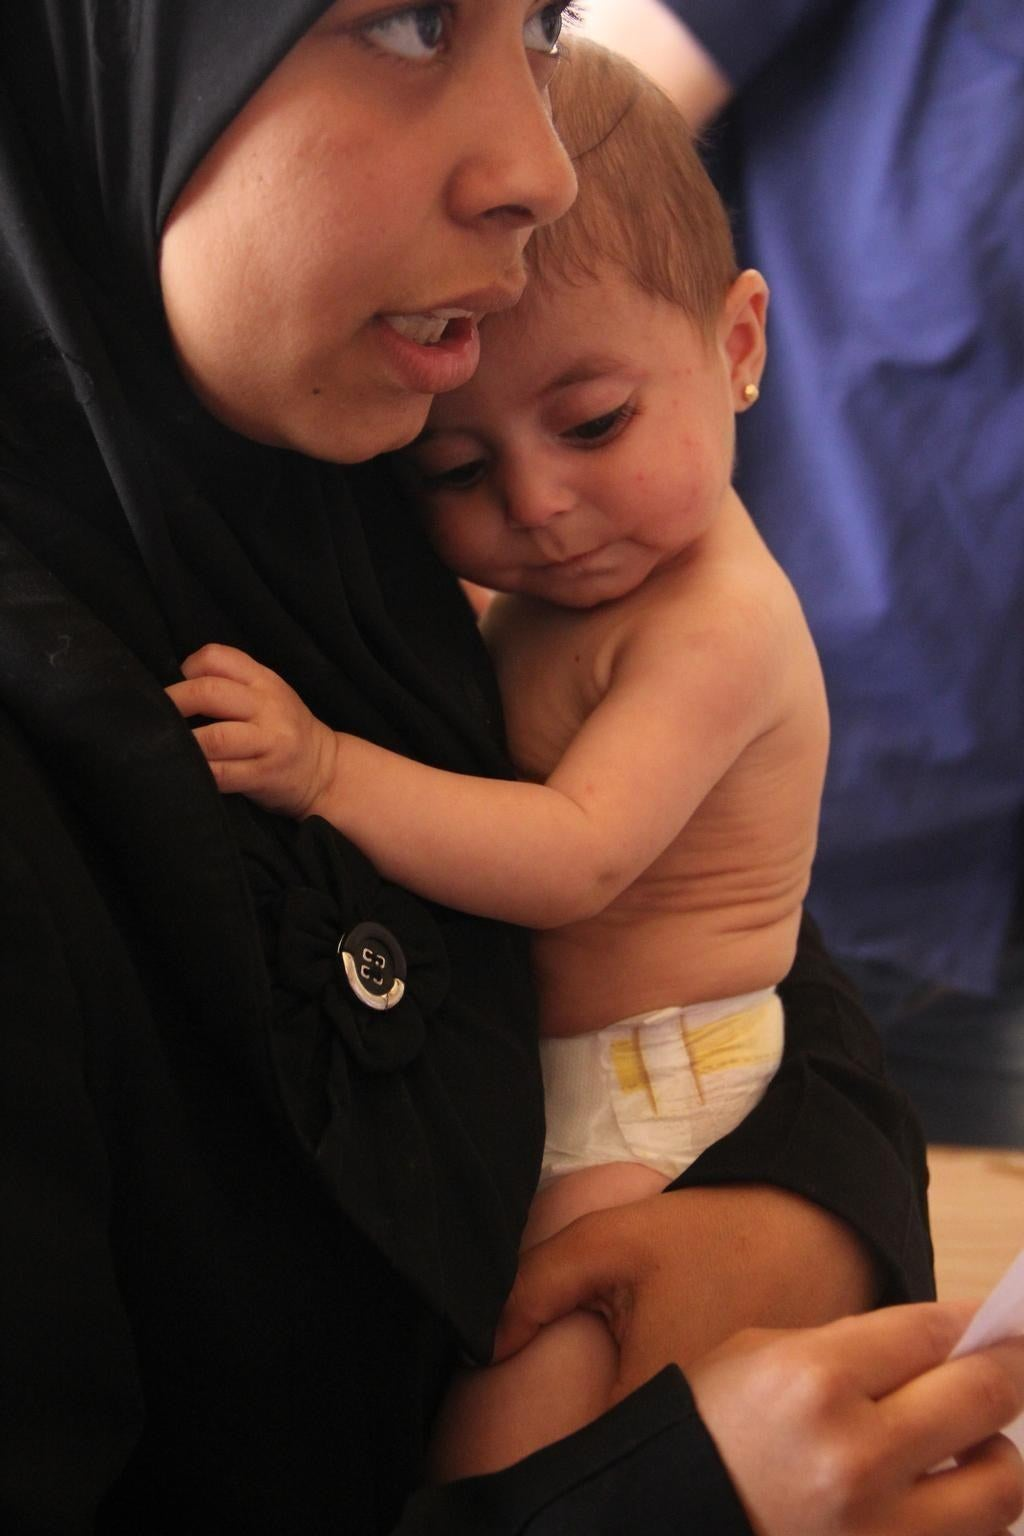 On 11 June 2014 in the Syrian Arab Republic, a woman holds her infant daughter, who underwent treatment for malnutrition, at a UNICEF-supported health centre in Aleppo, the capital of Aleppo Governorate.